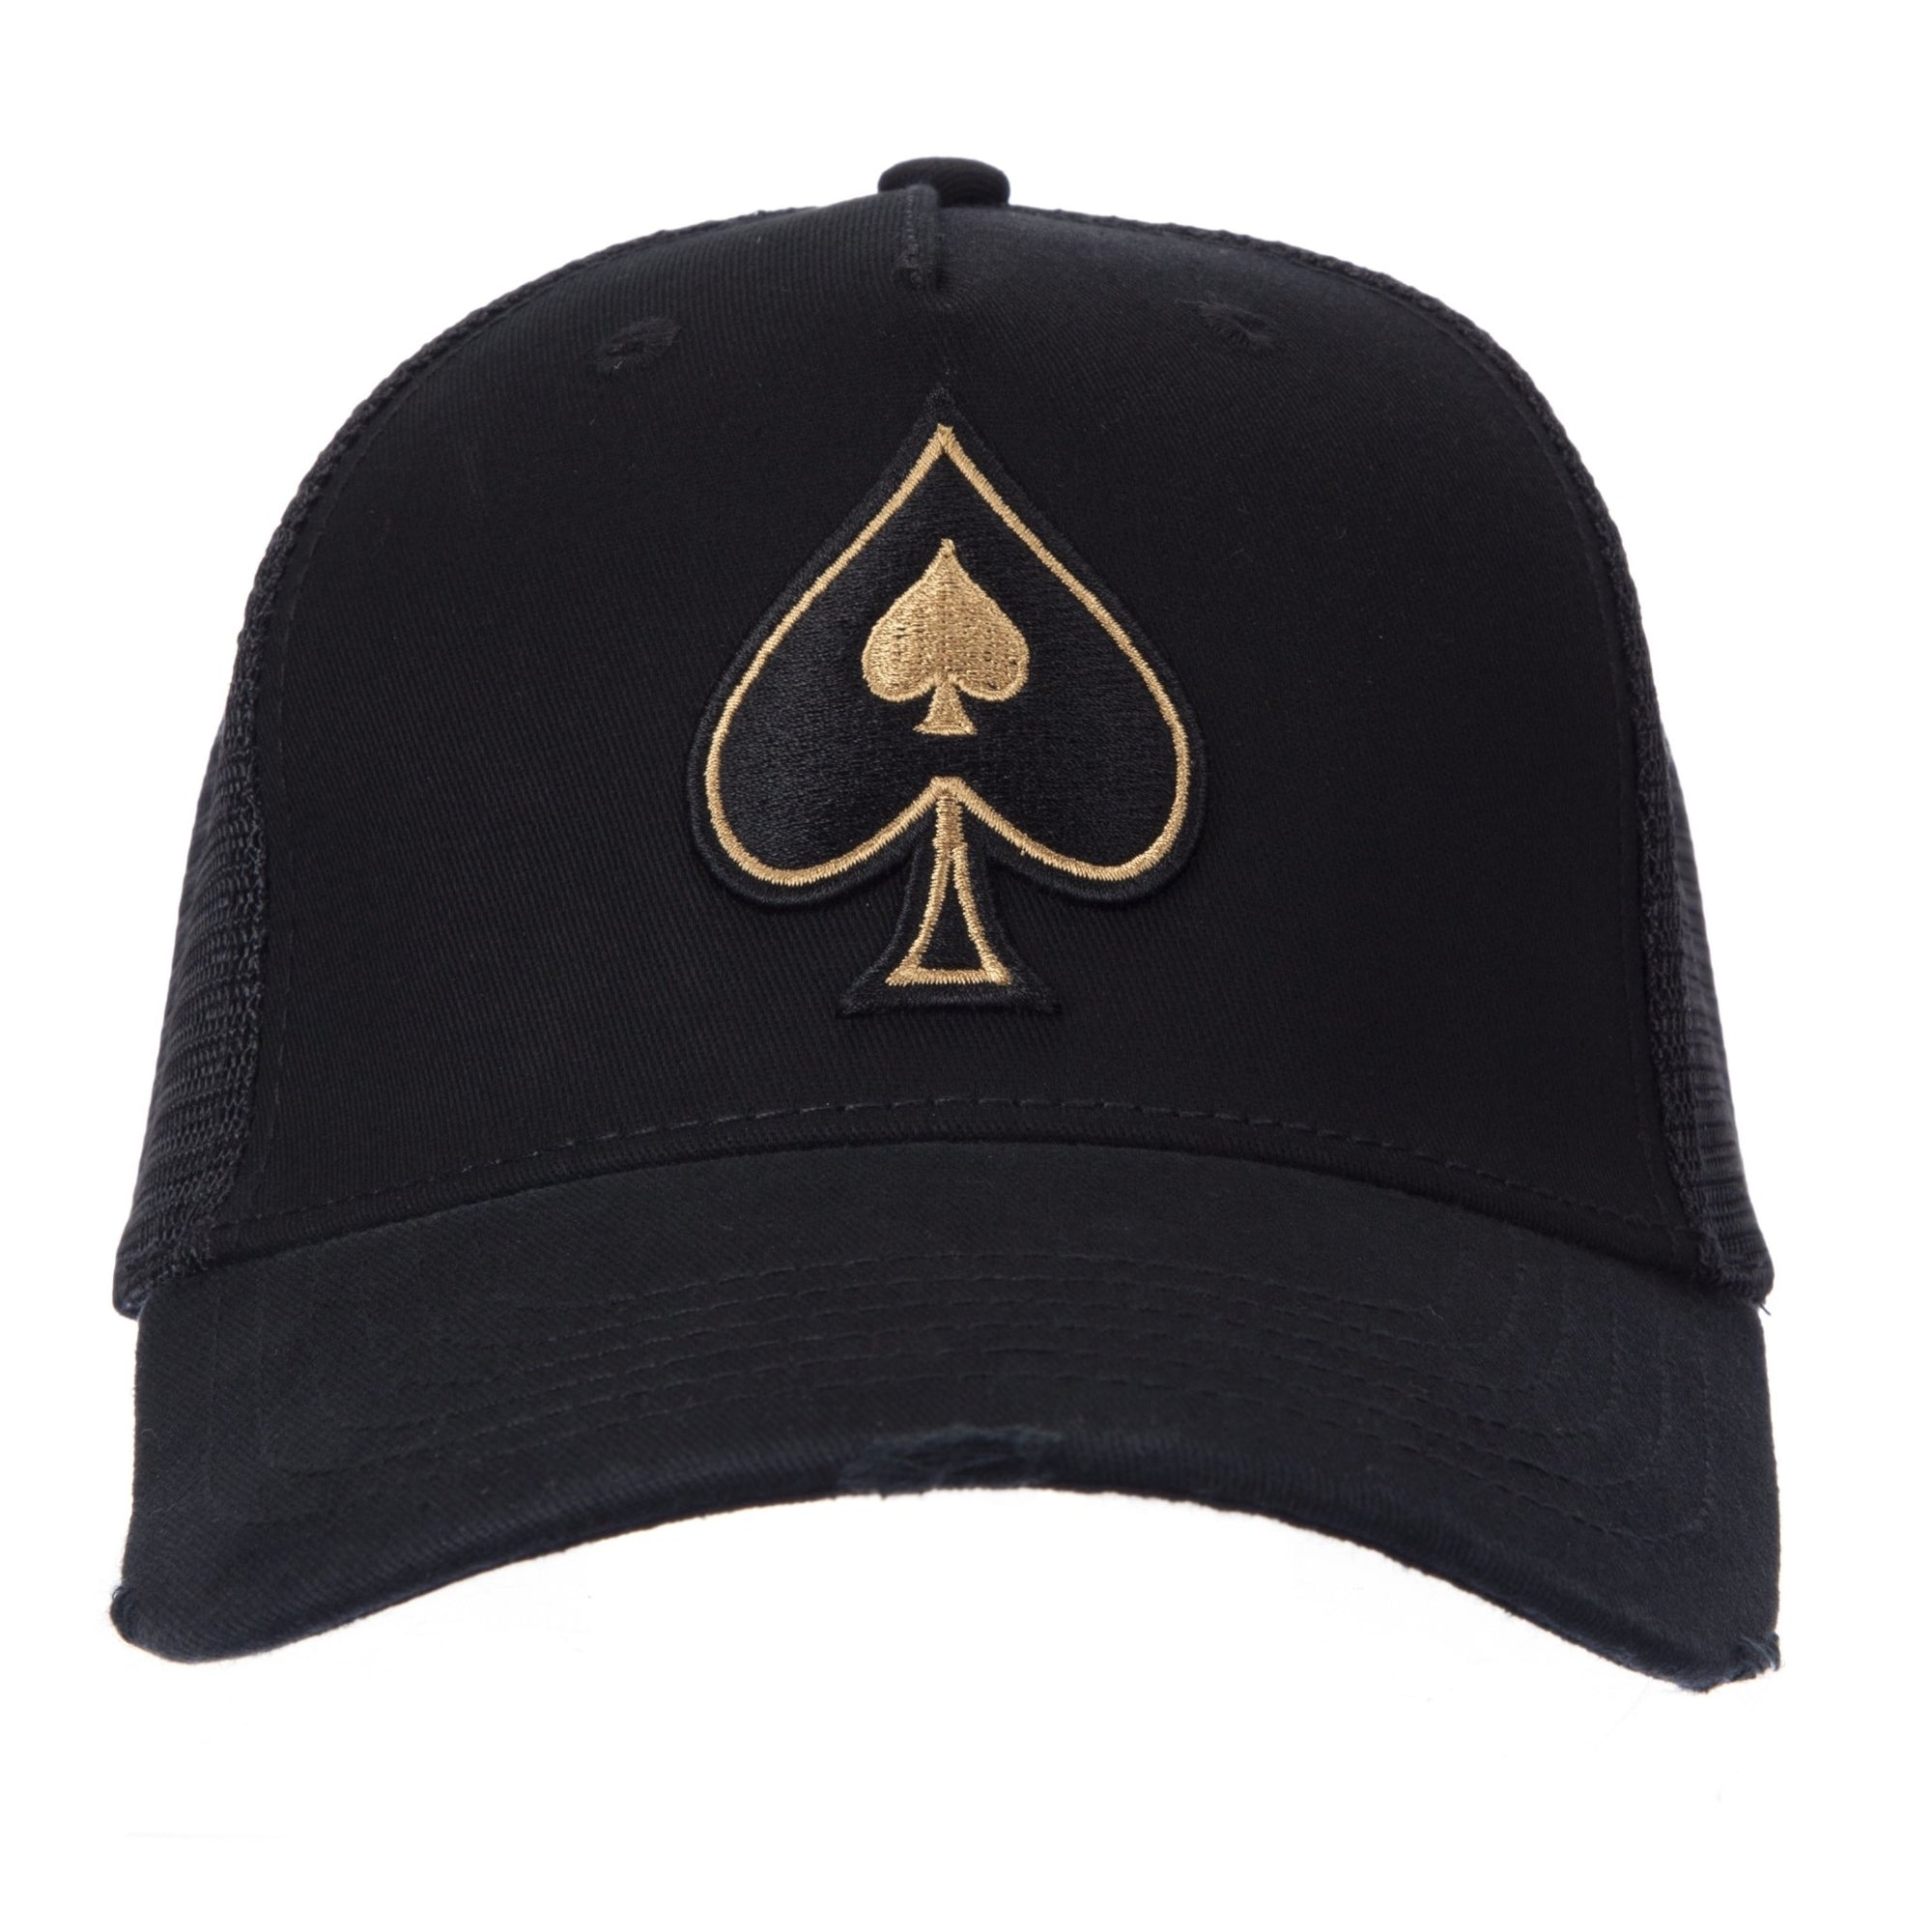 Black Trucker with Rose Gold Spades - ACE VESTITI